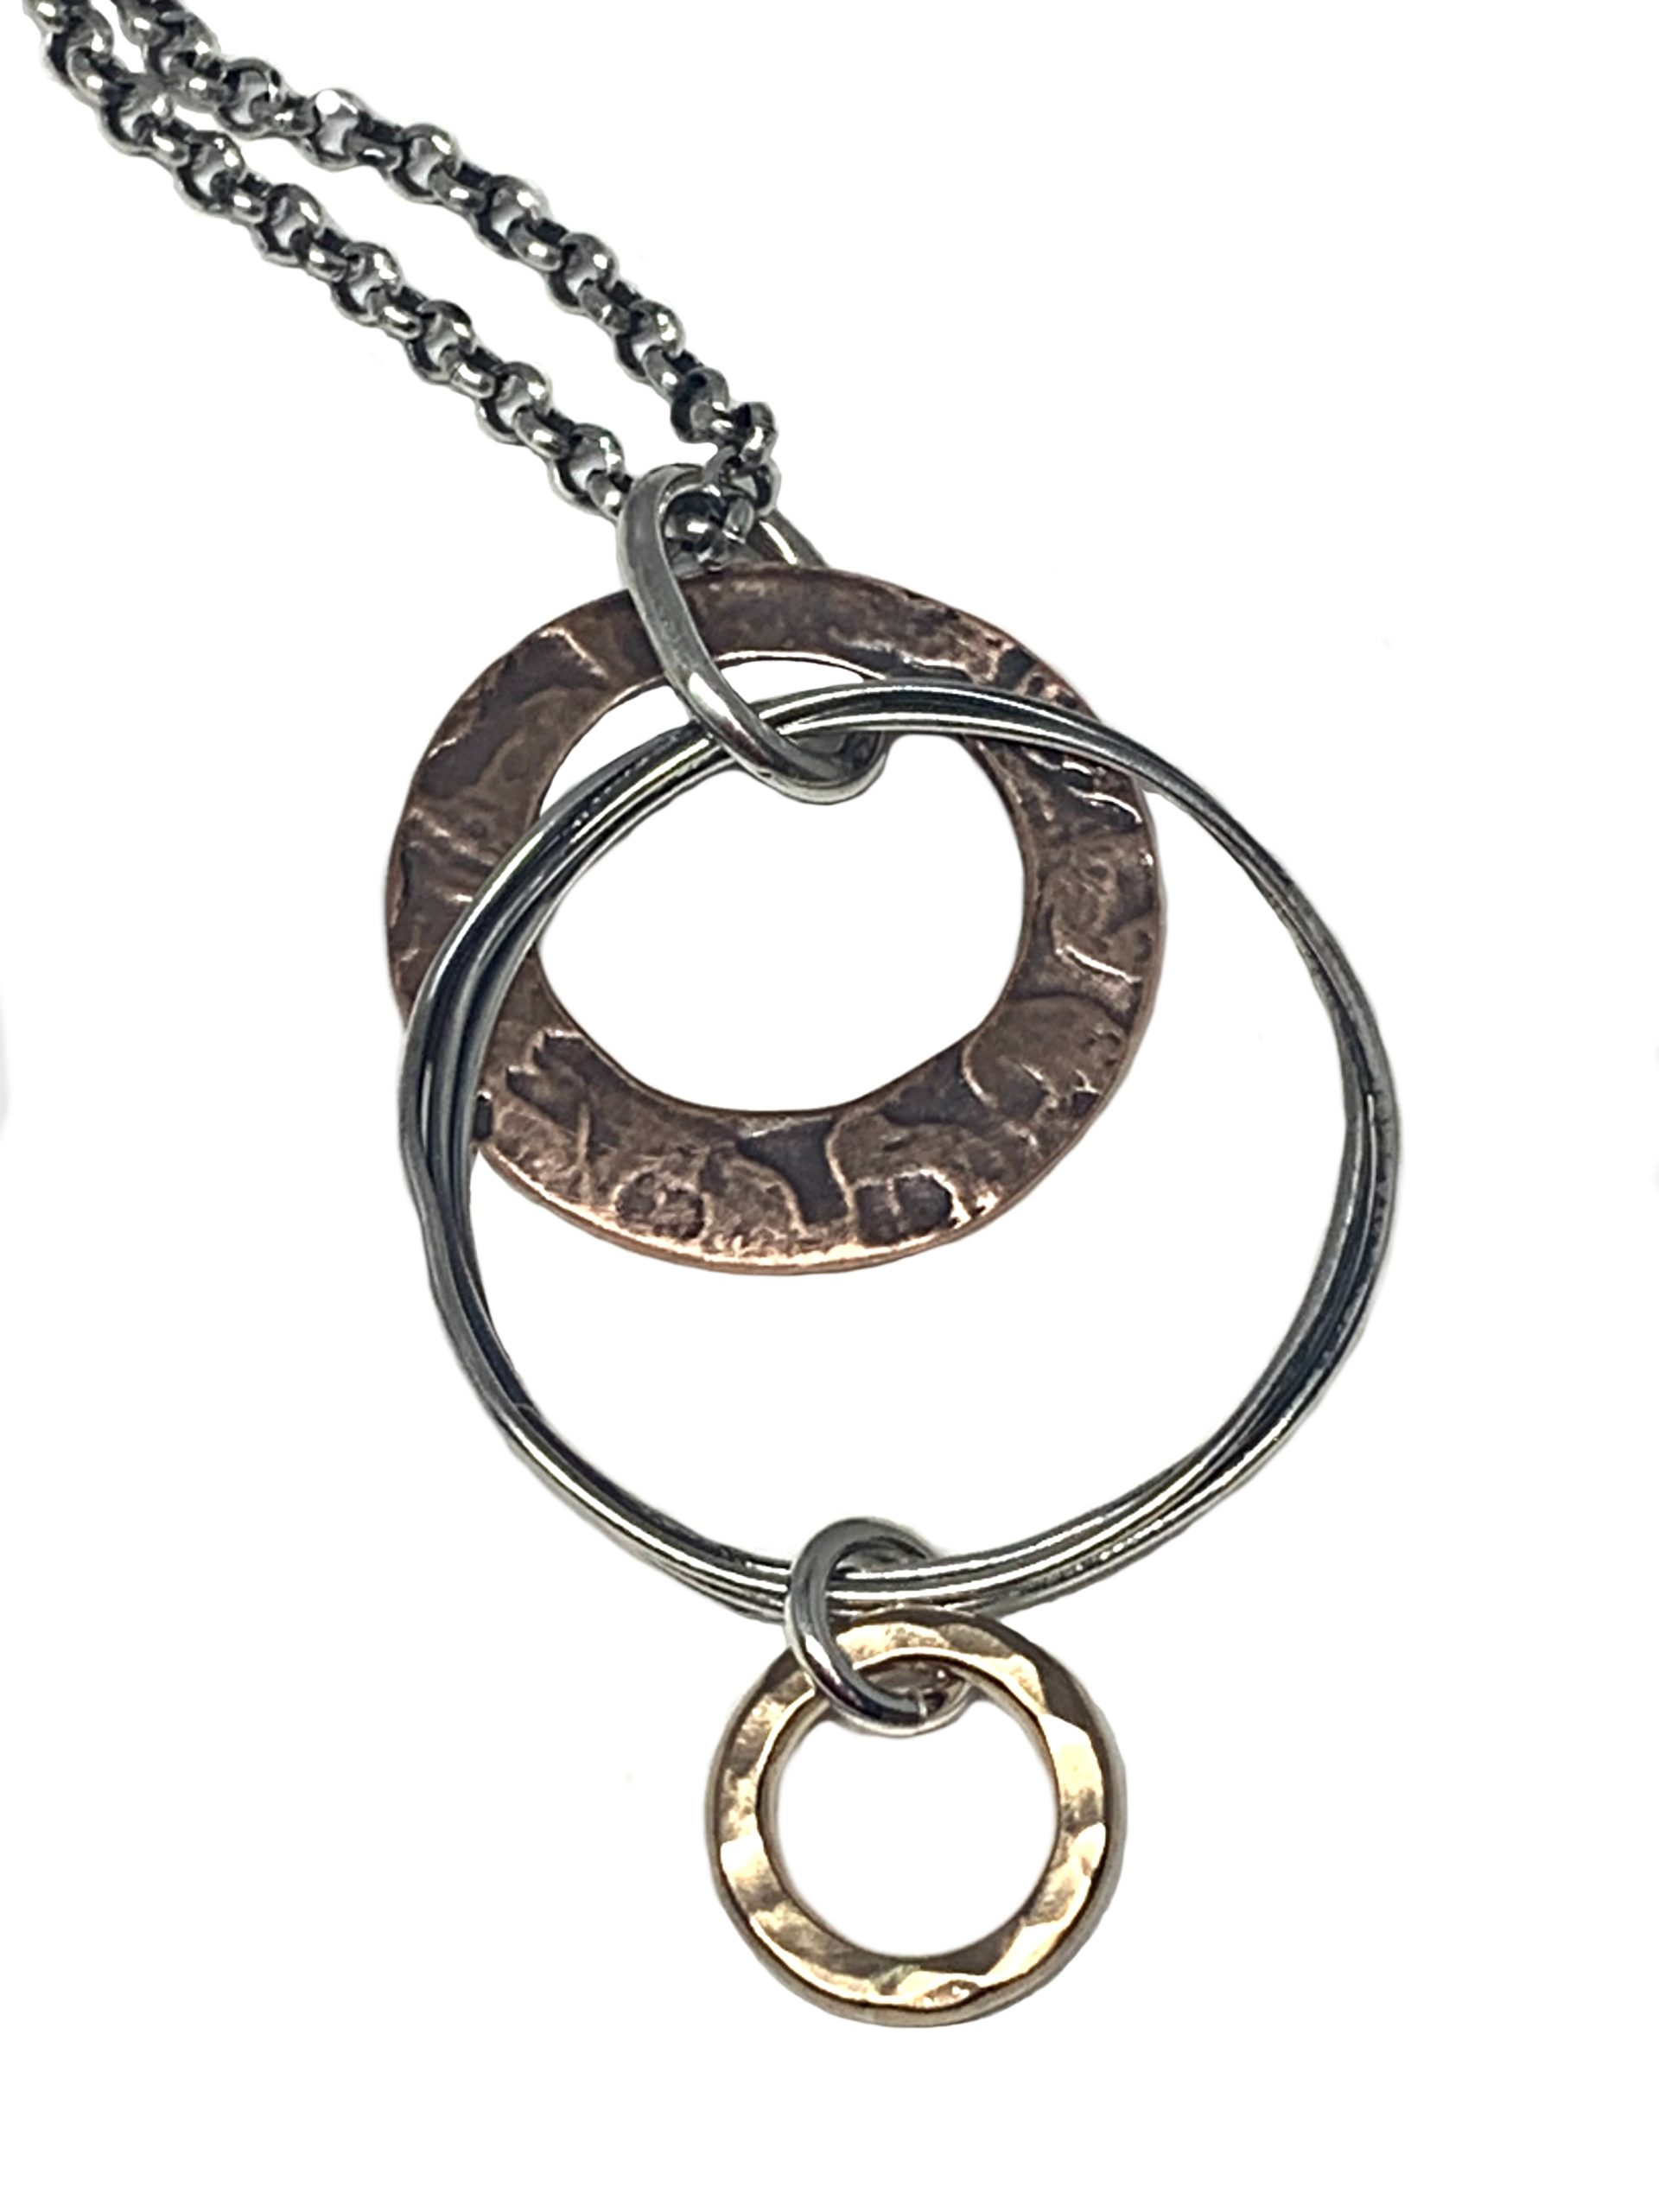 Sterling silver, bronze, and copper necklace by Karyn Chopik | Effusion Art Gallery + Cast Glass Studio, Invermere BC